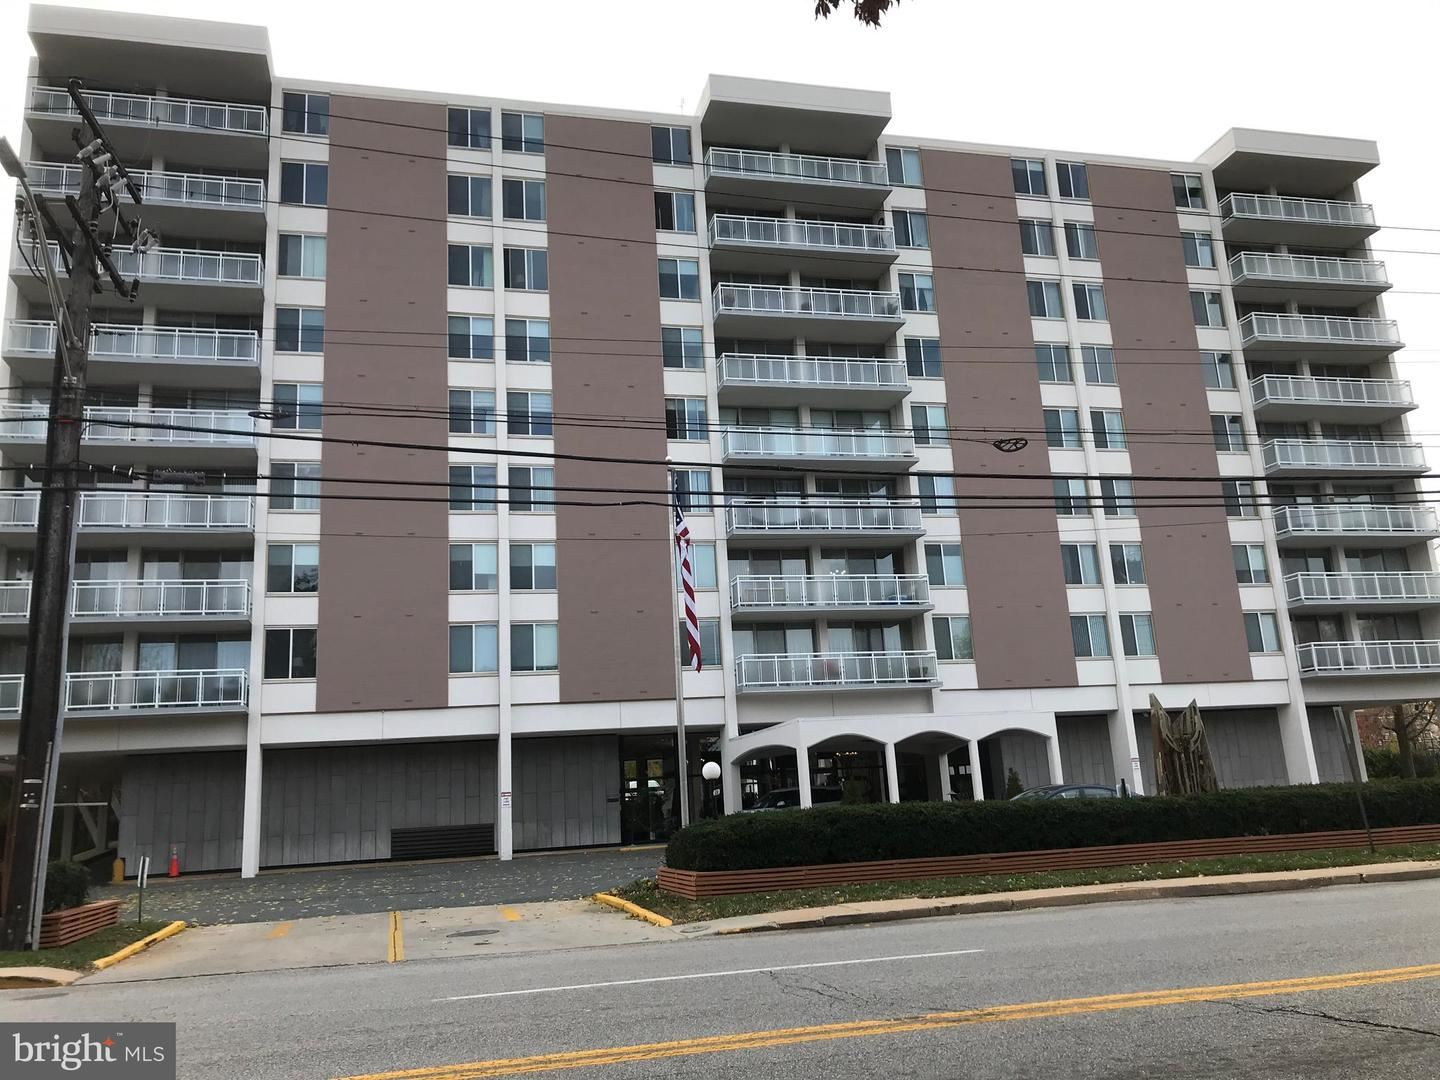 6210 PARK HEIGHTS AVE #903, Baltimore, MD 21215 - MLS#: MDBA511790